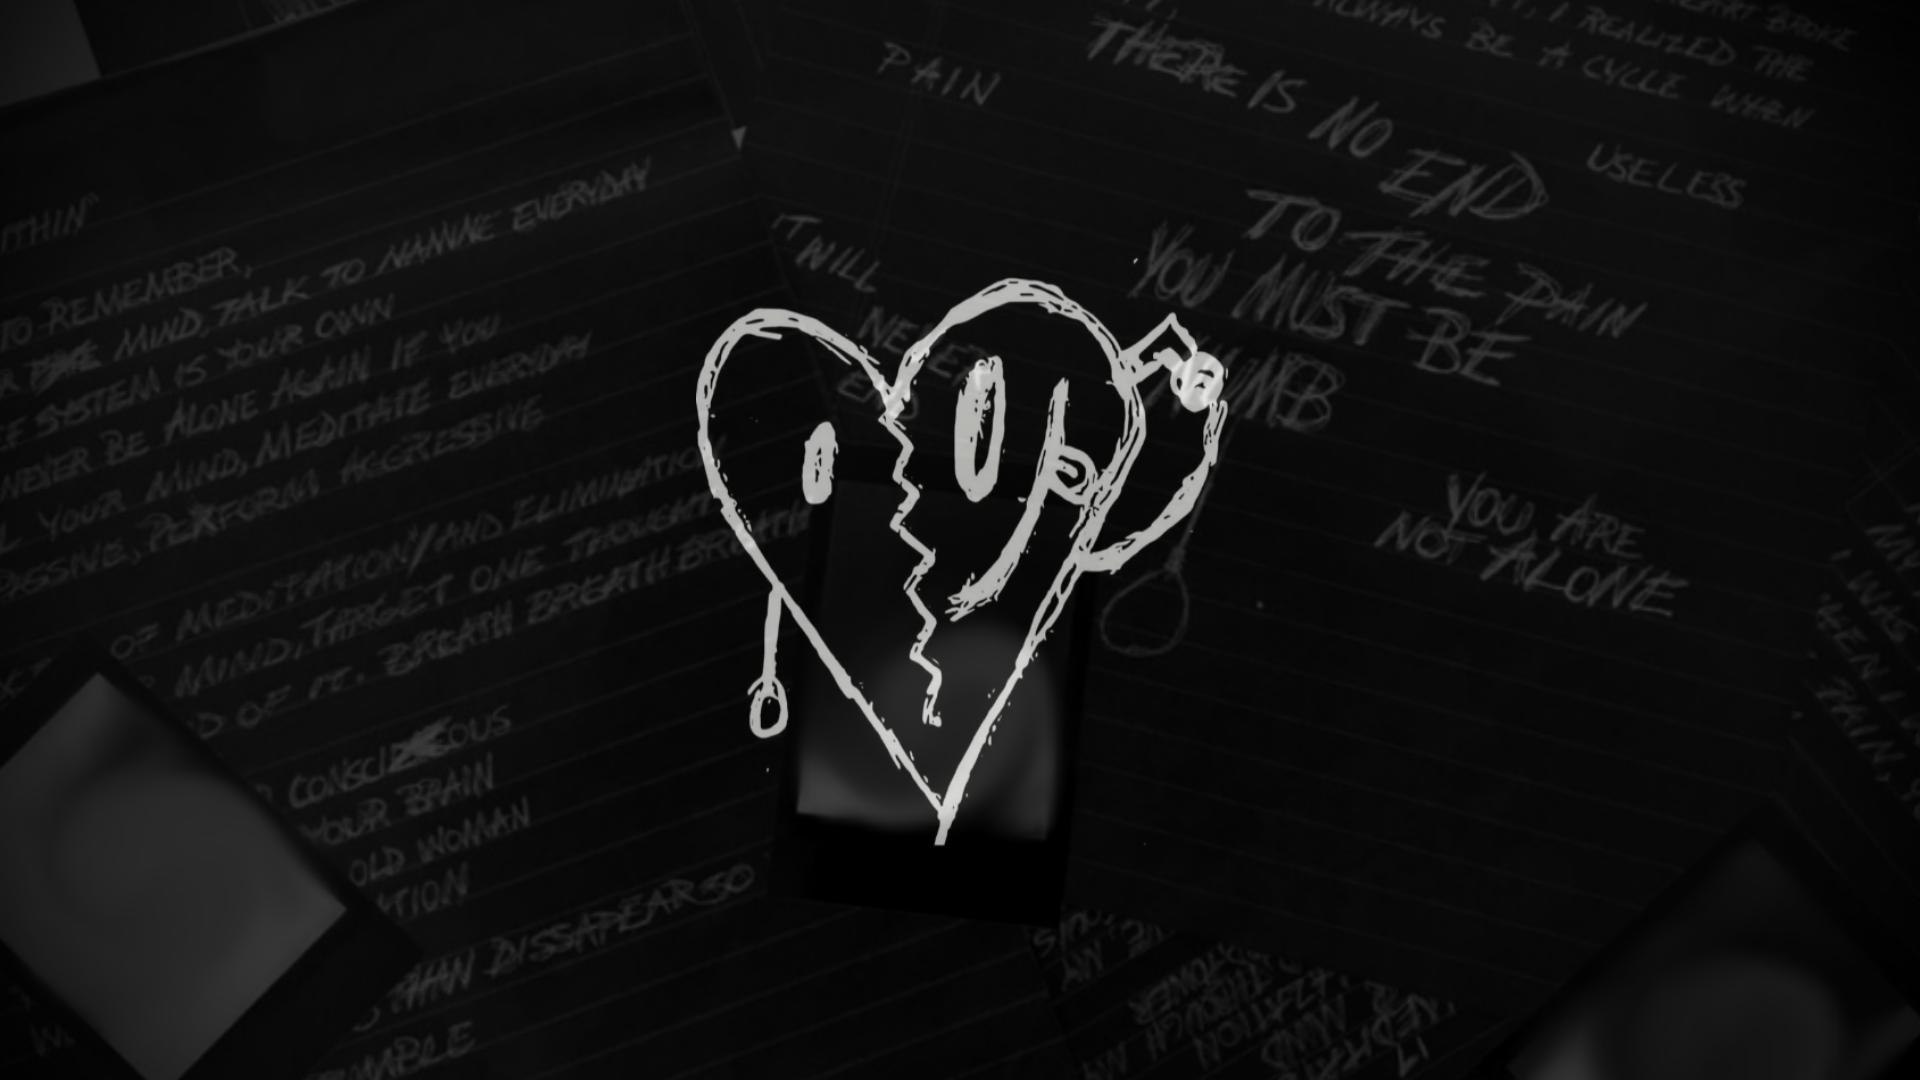 1920x1080 XXXTentacion Latest Wallpapers